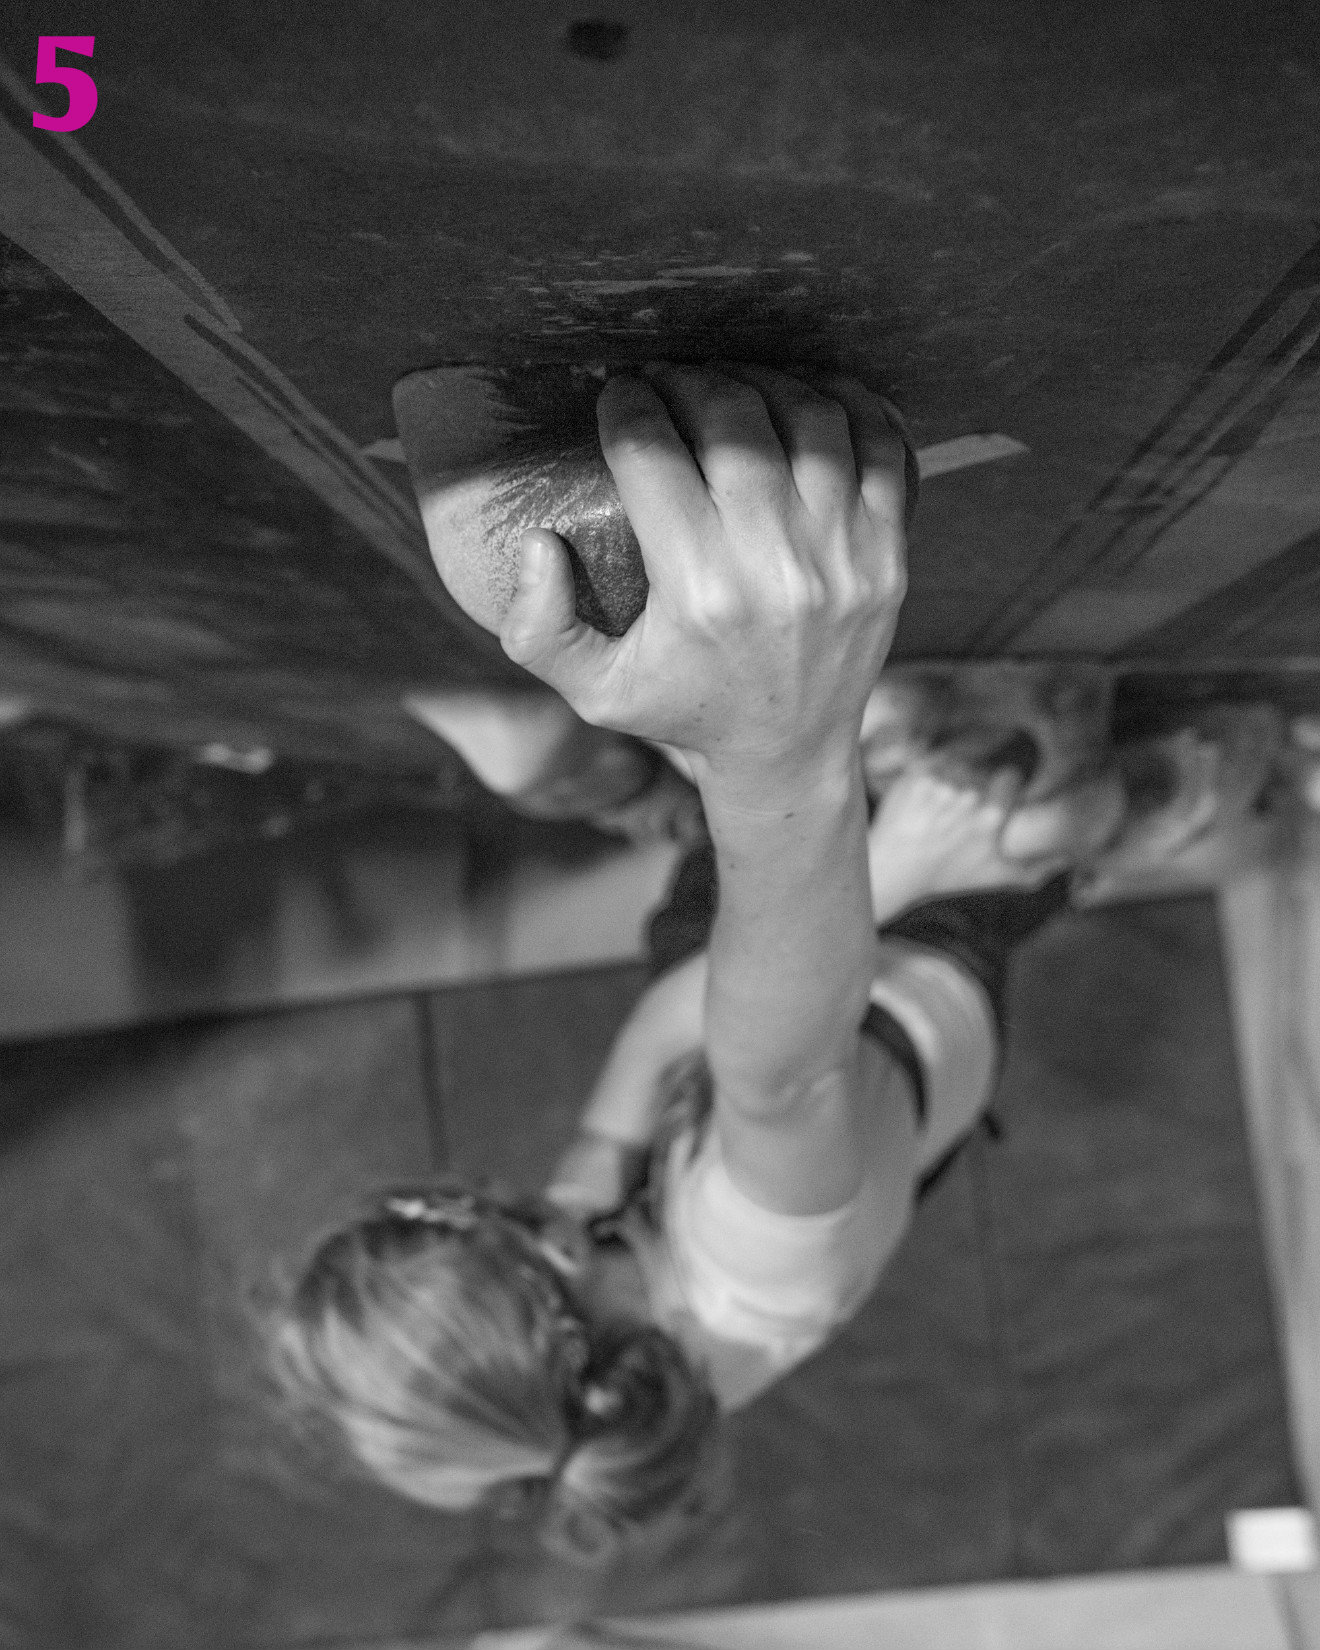 #5 - If you want to get your adventure-seeking, indoor climbing on, head to RockQuest in Sharonville. / Image: Phil Armstrong, Cincinnati Refined